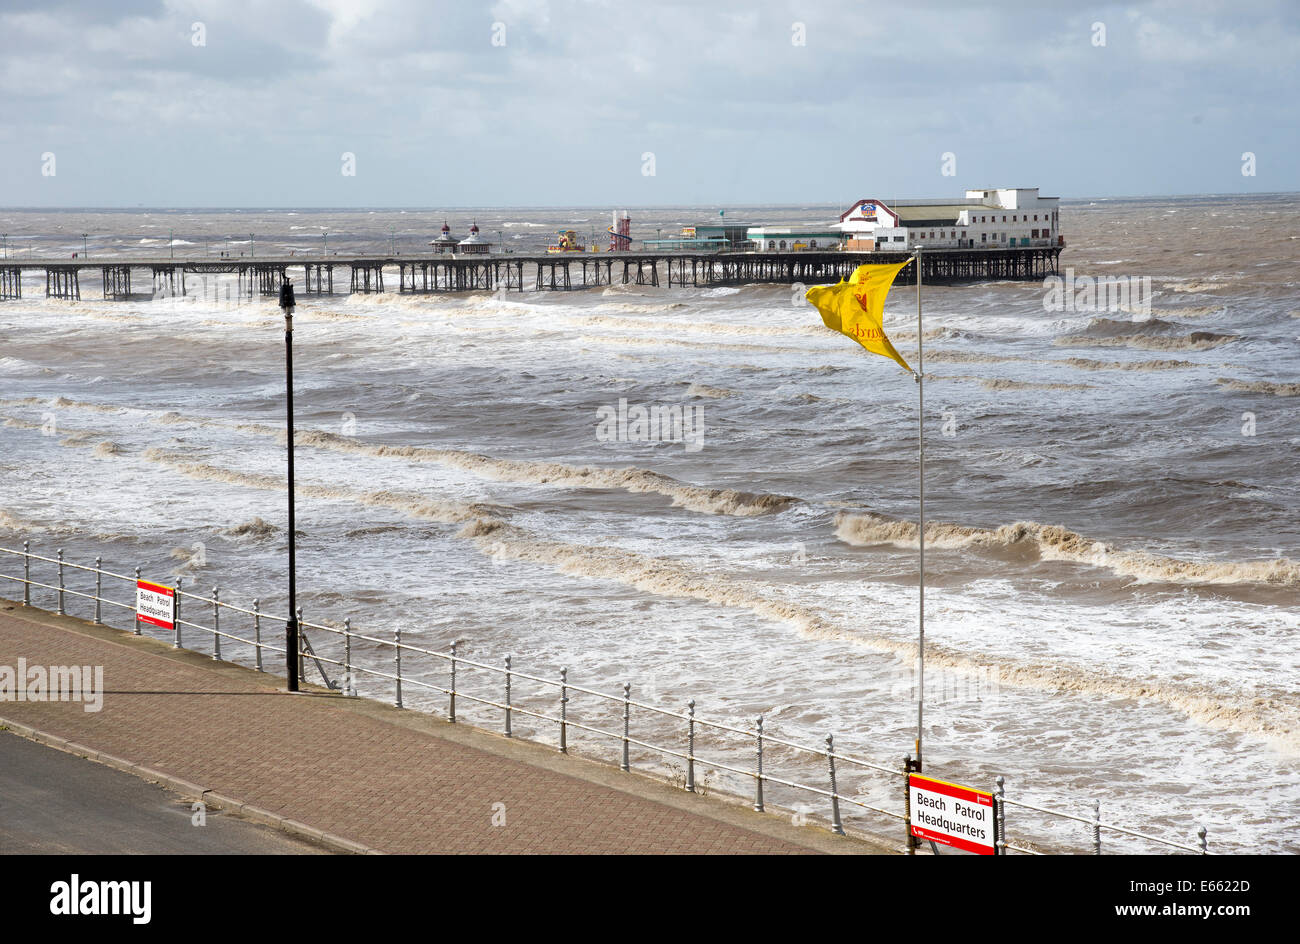 North Pier on windy summer day and rough sea at Blackpool Lancashire England UK Mid summer bad weather conditions - Stock Image